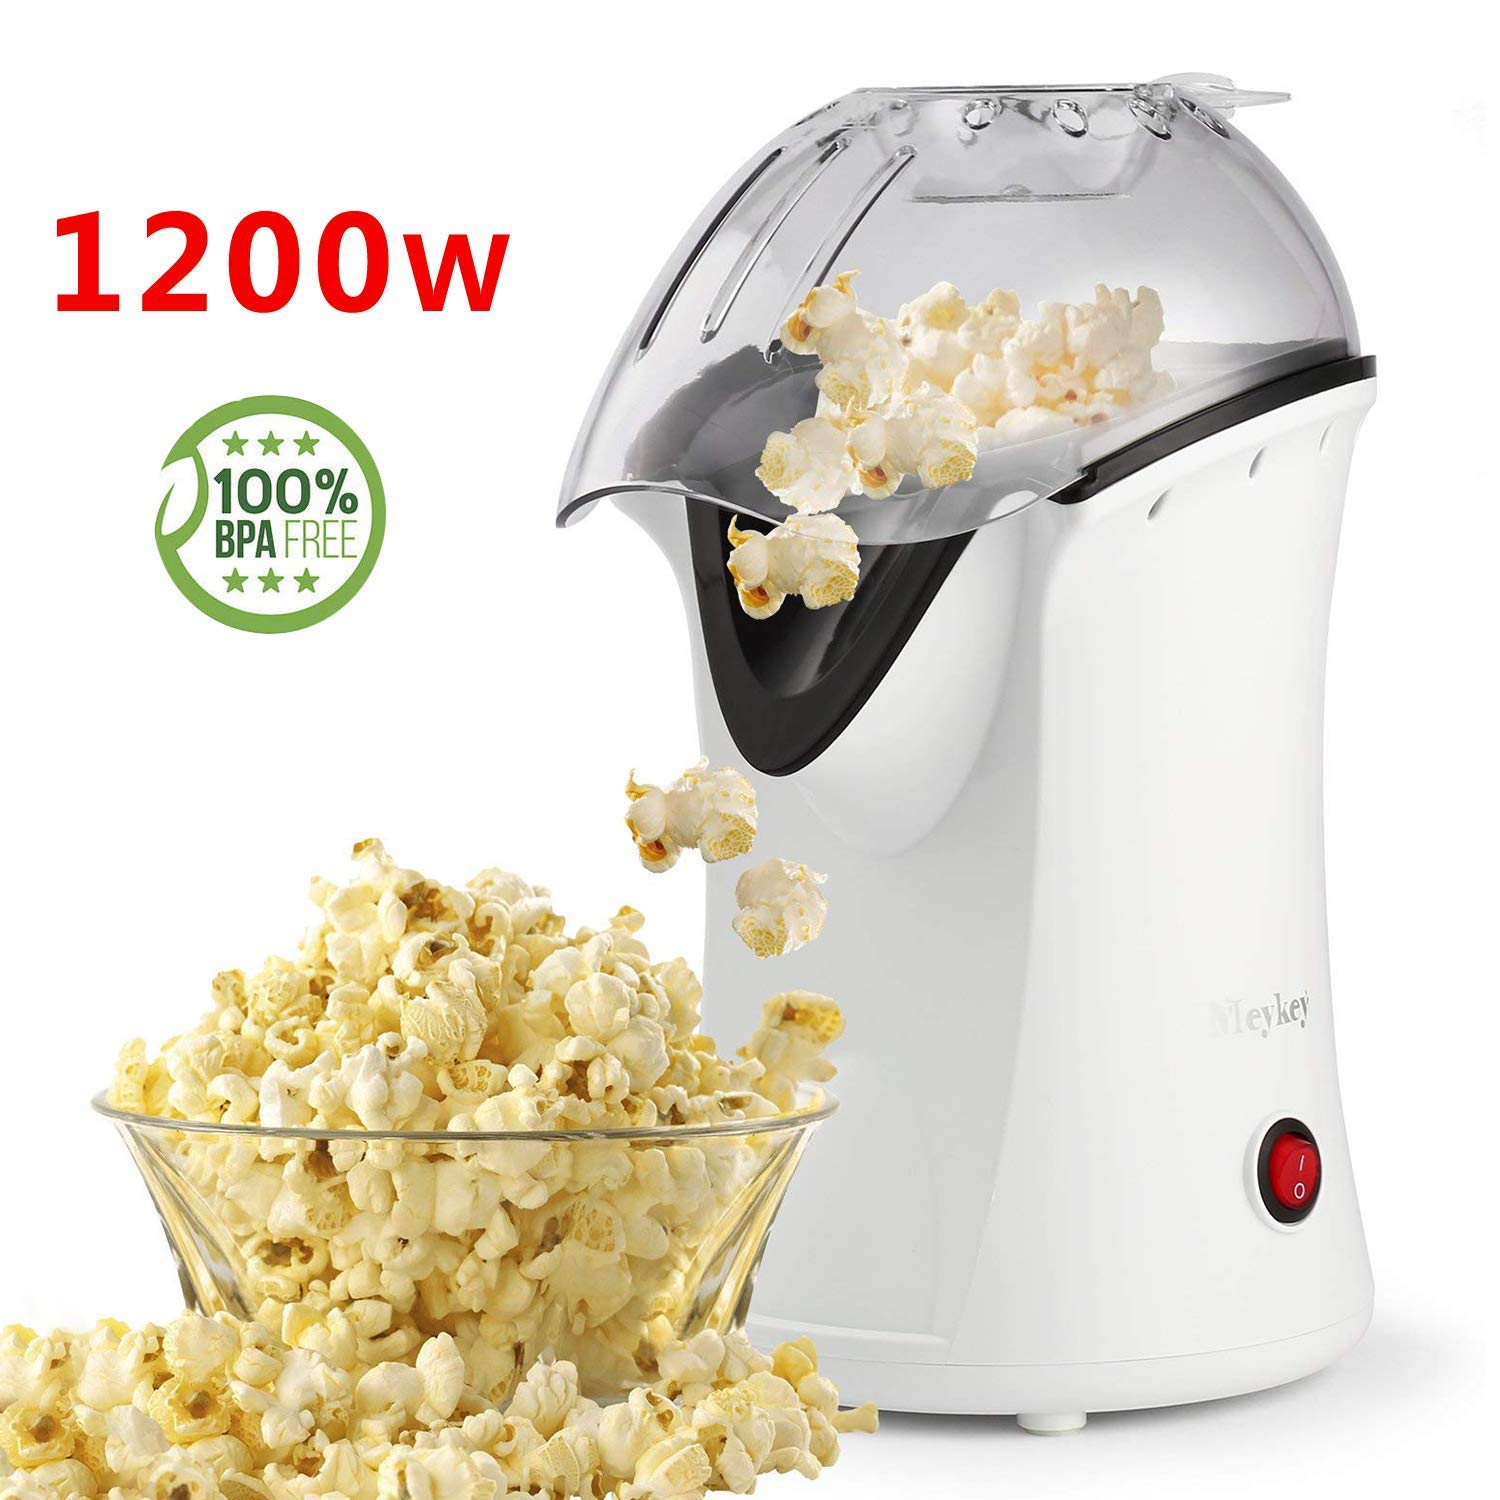 Hot Air Popcorn Popper, Popcorn Maker, 1200W Electric Popcorn Machine with Measuring Cup and Removable Lid, Healthy Popcorn Maker for Home, No Oil Needed, Great For Kids (White) Guiok